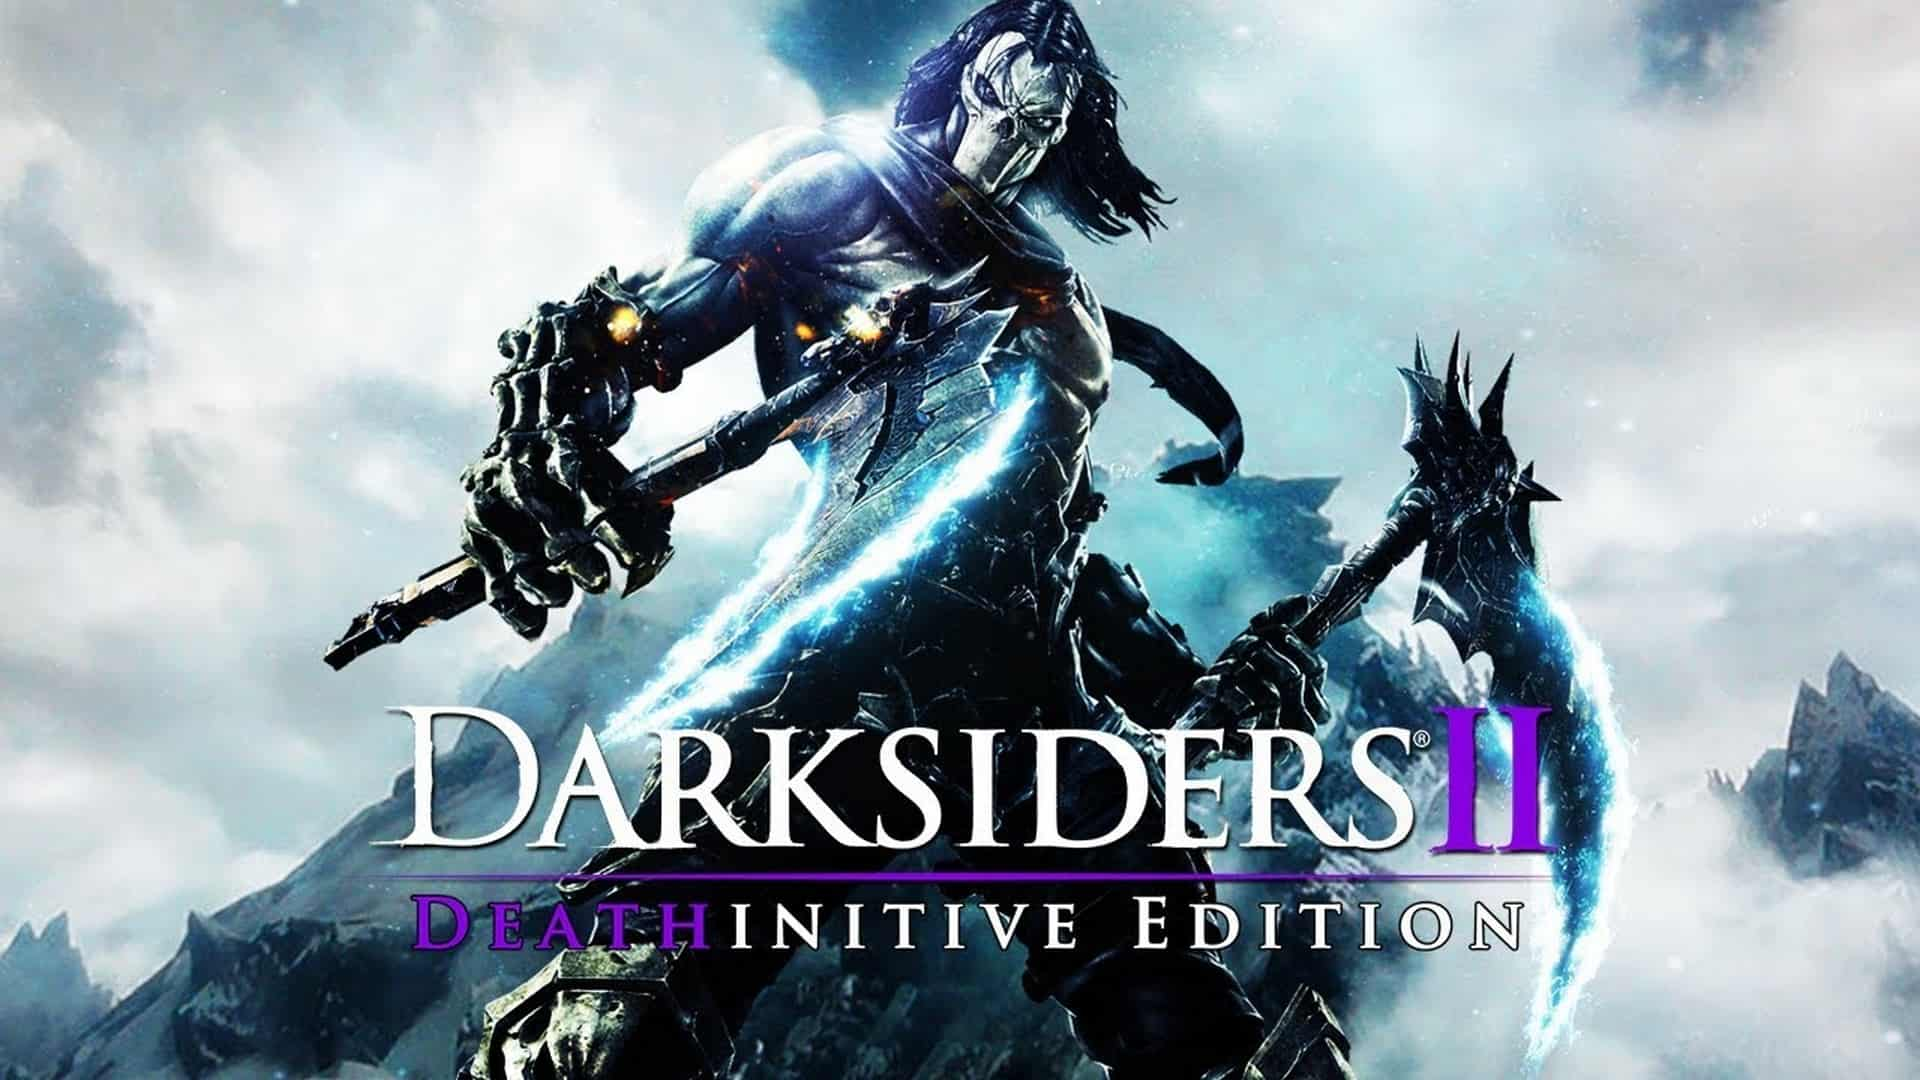 Darksiders II Deathinitive Edition Out Now On Nintendo Switch